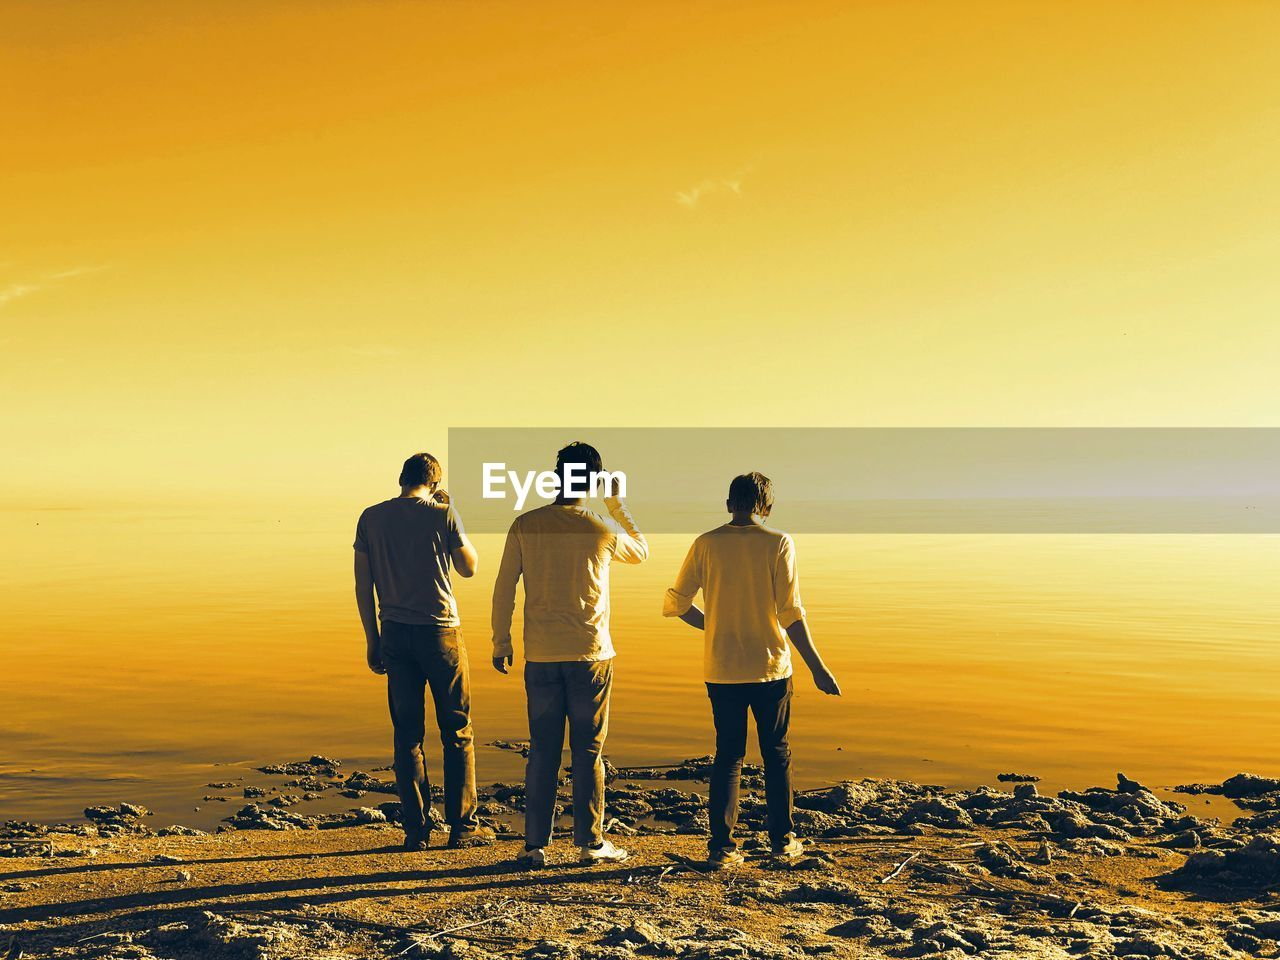 sky, sunset, beauty in nature, leisure activity, rear view, men, orange color, real people, lifestyles, togetherness, nature, water, standing, scenics - nature, group of people, full length, bonding, land, friendship, outdoors, horizon over water